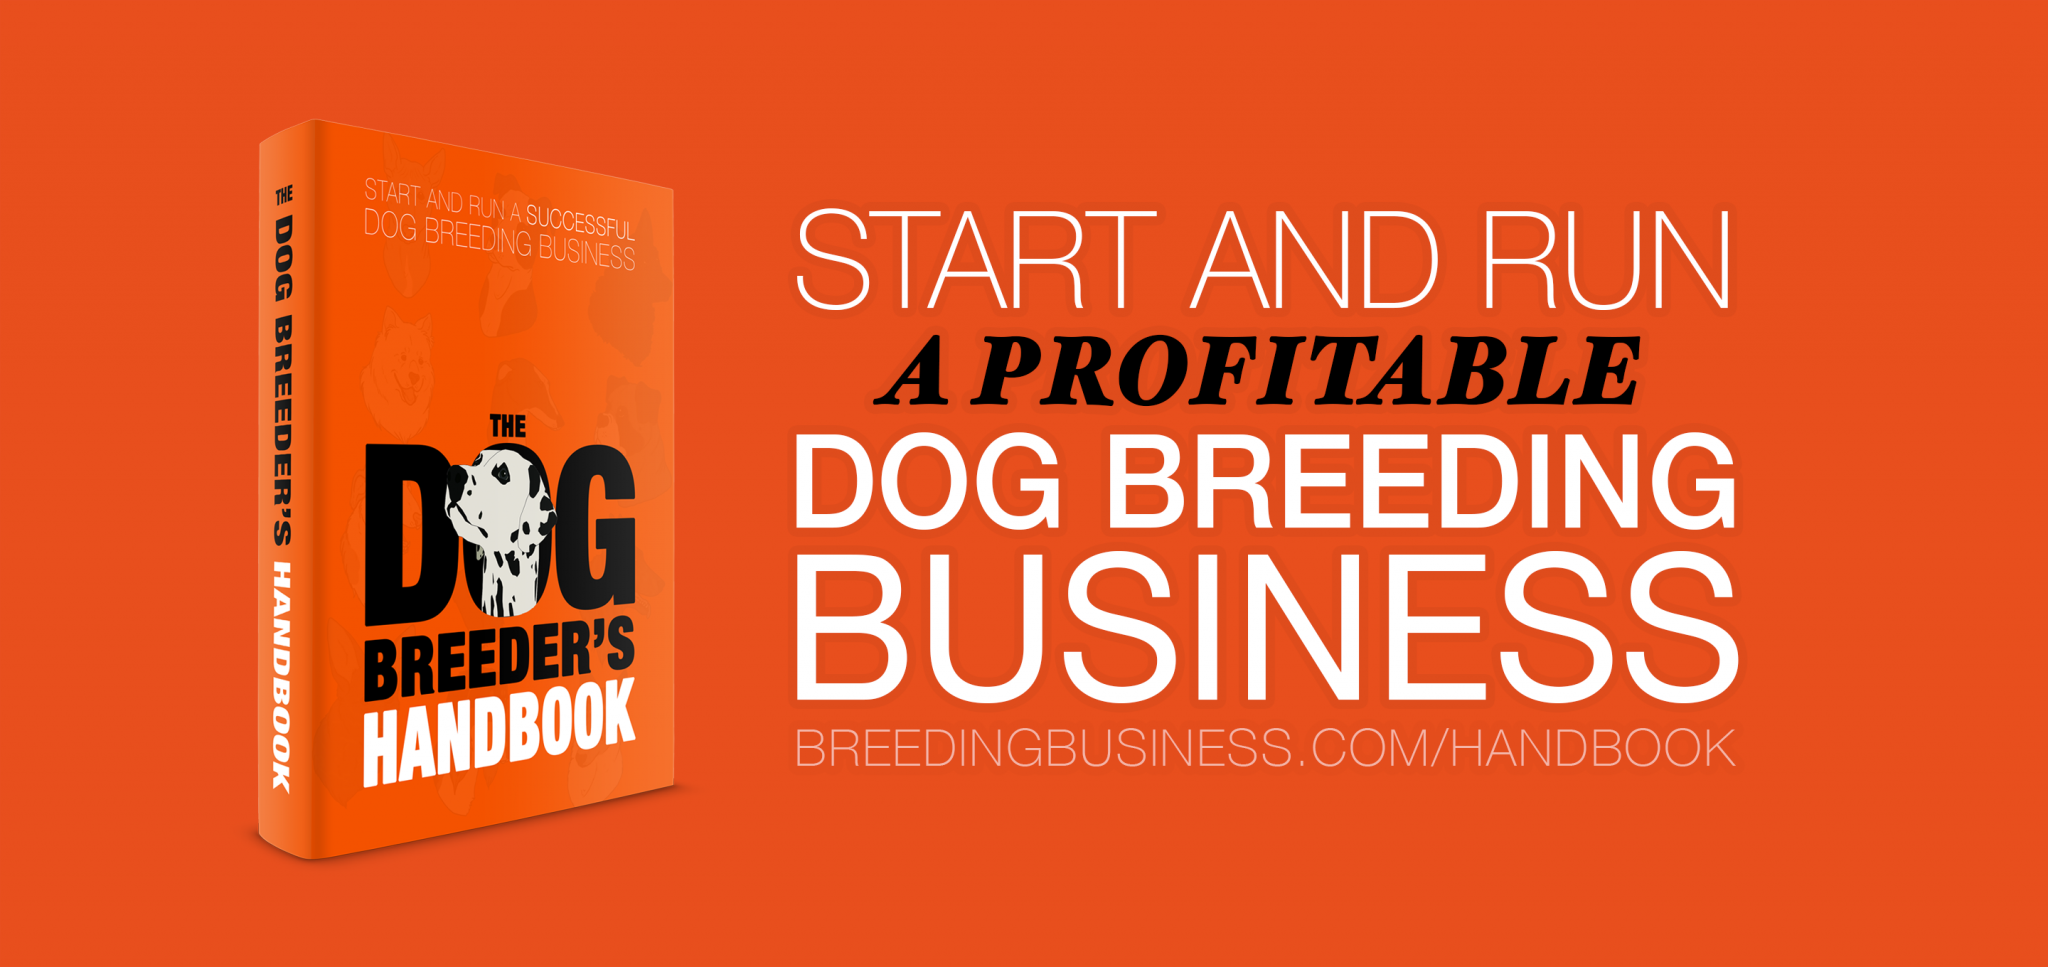 For dog breeders who want to breed and sell dogs like it's 2015, not 1990.